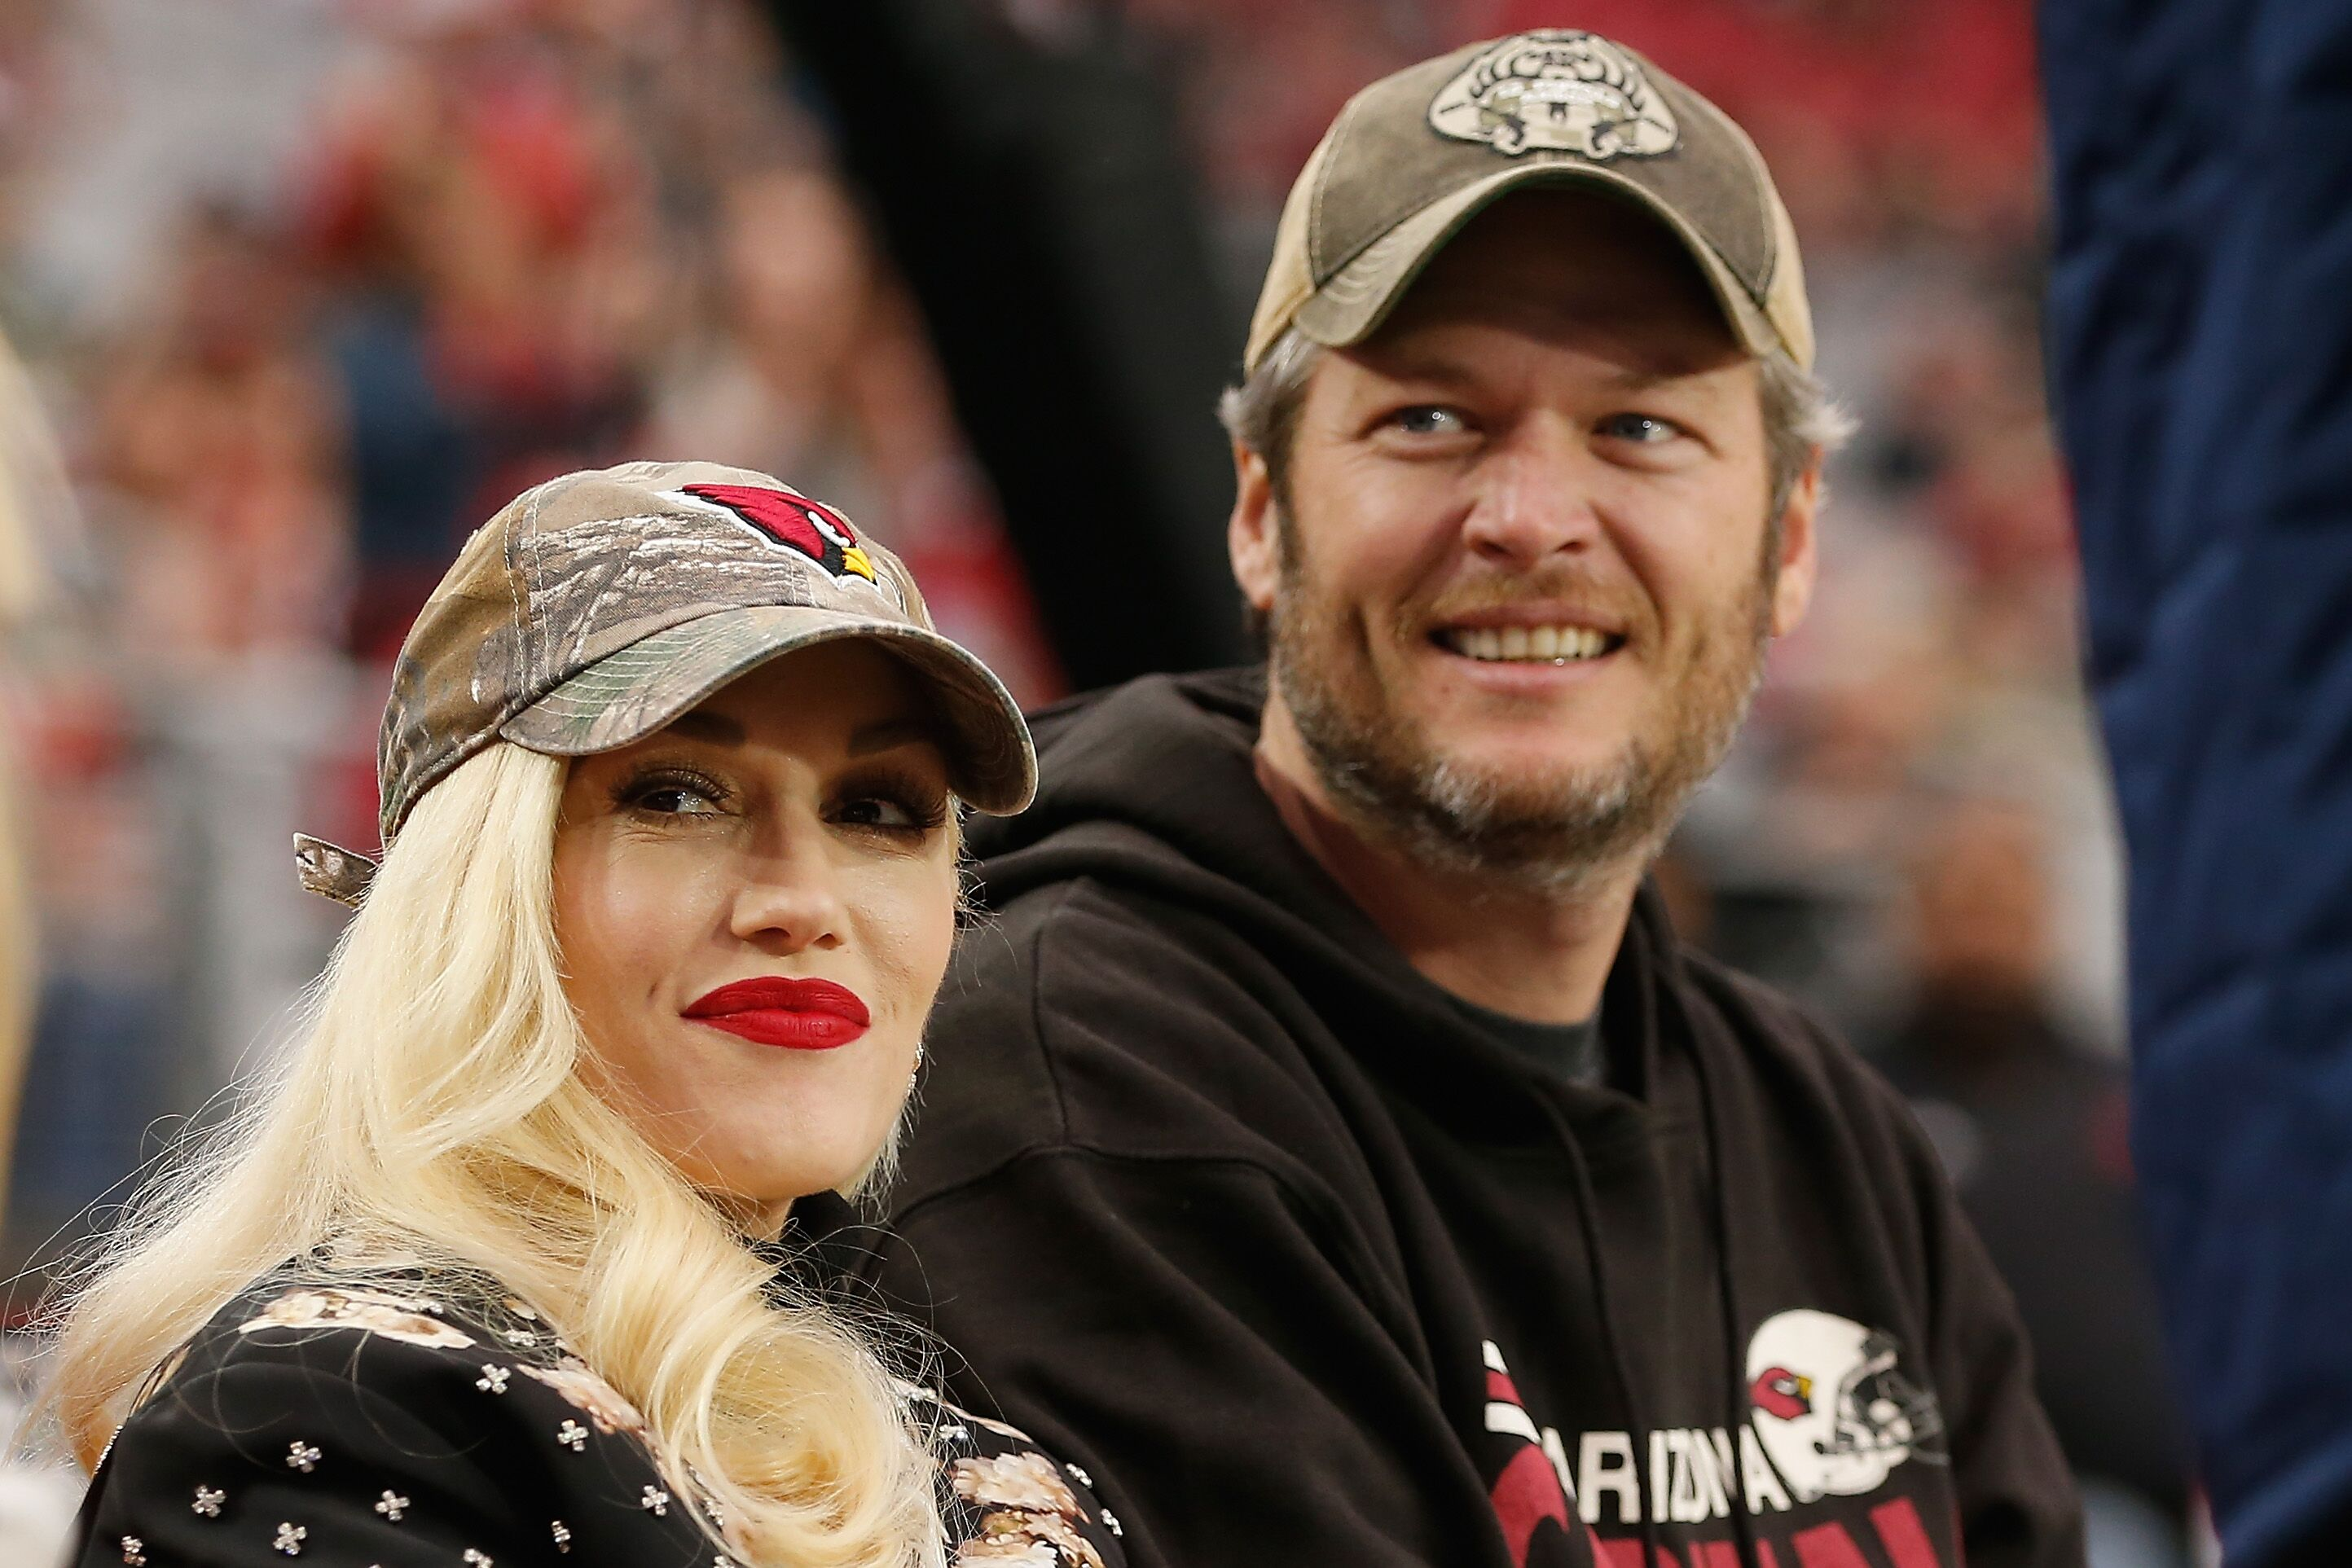 Musicians Gwen Stefani and Blake Shelton attend the NFL game between the Green Bay Packers and Arizona Cardinals at the University of Phoenix Stadium on December 27, 2015 in Glendale, Arizona.  | Source: Getty Images